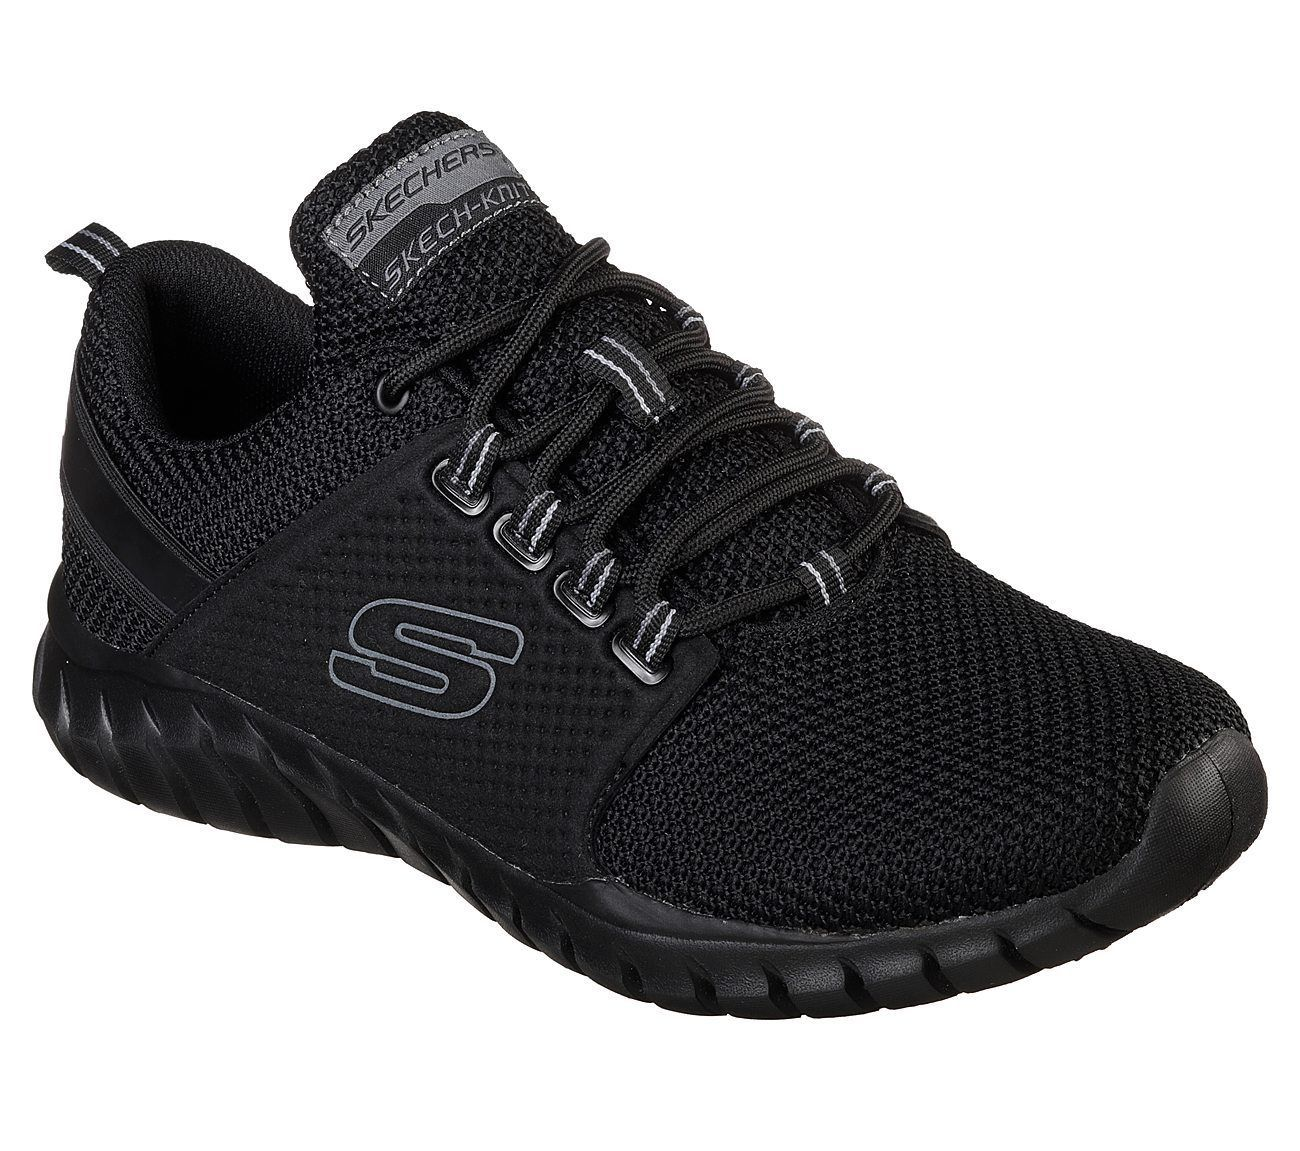 52821 Wide Fit Black Skechers shoe Men Memory Foam Sport Comfort Train Walk Mesh